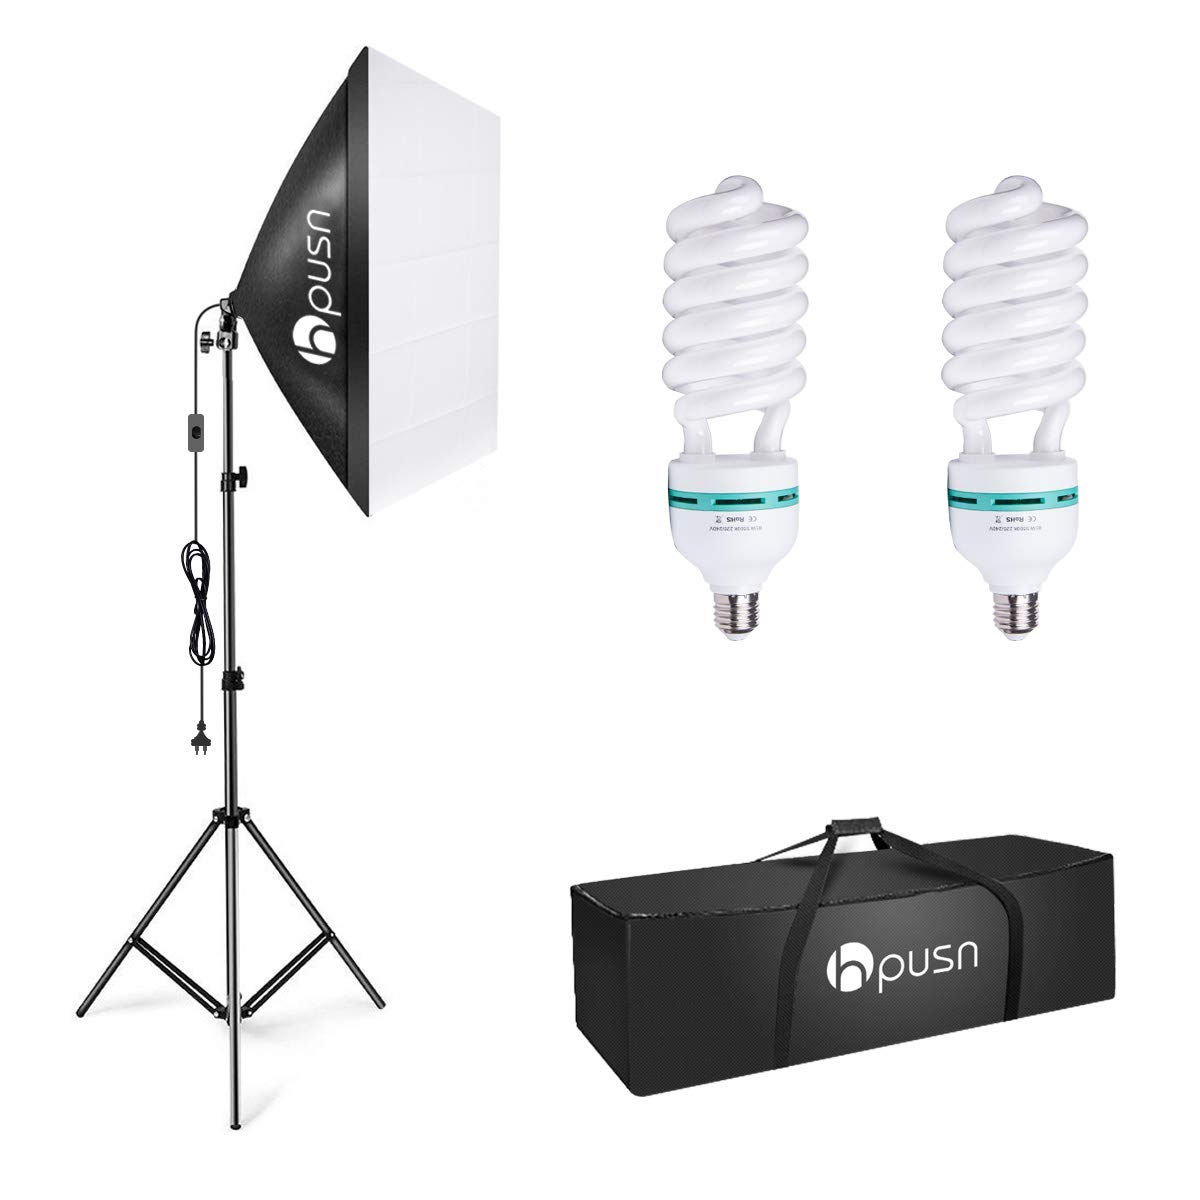 HPUSN Softbox Lighting Kit Photography Studio Light with 20-inch X 28-inch Reflector and 2pcs 85W 5500K E27 Bulb, Professional Photo Studio Equipment for Portrait Fashion Photography Video, etc. by HPUSN